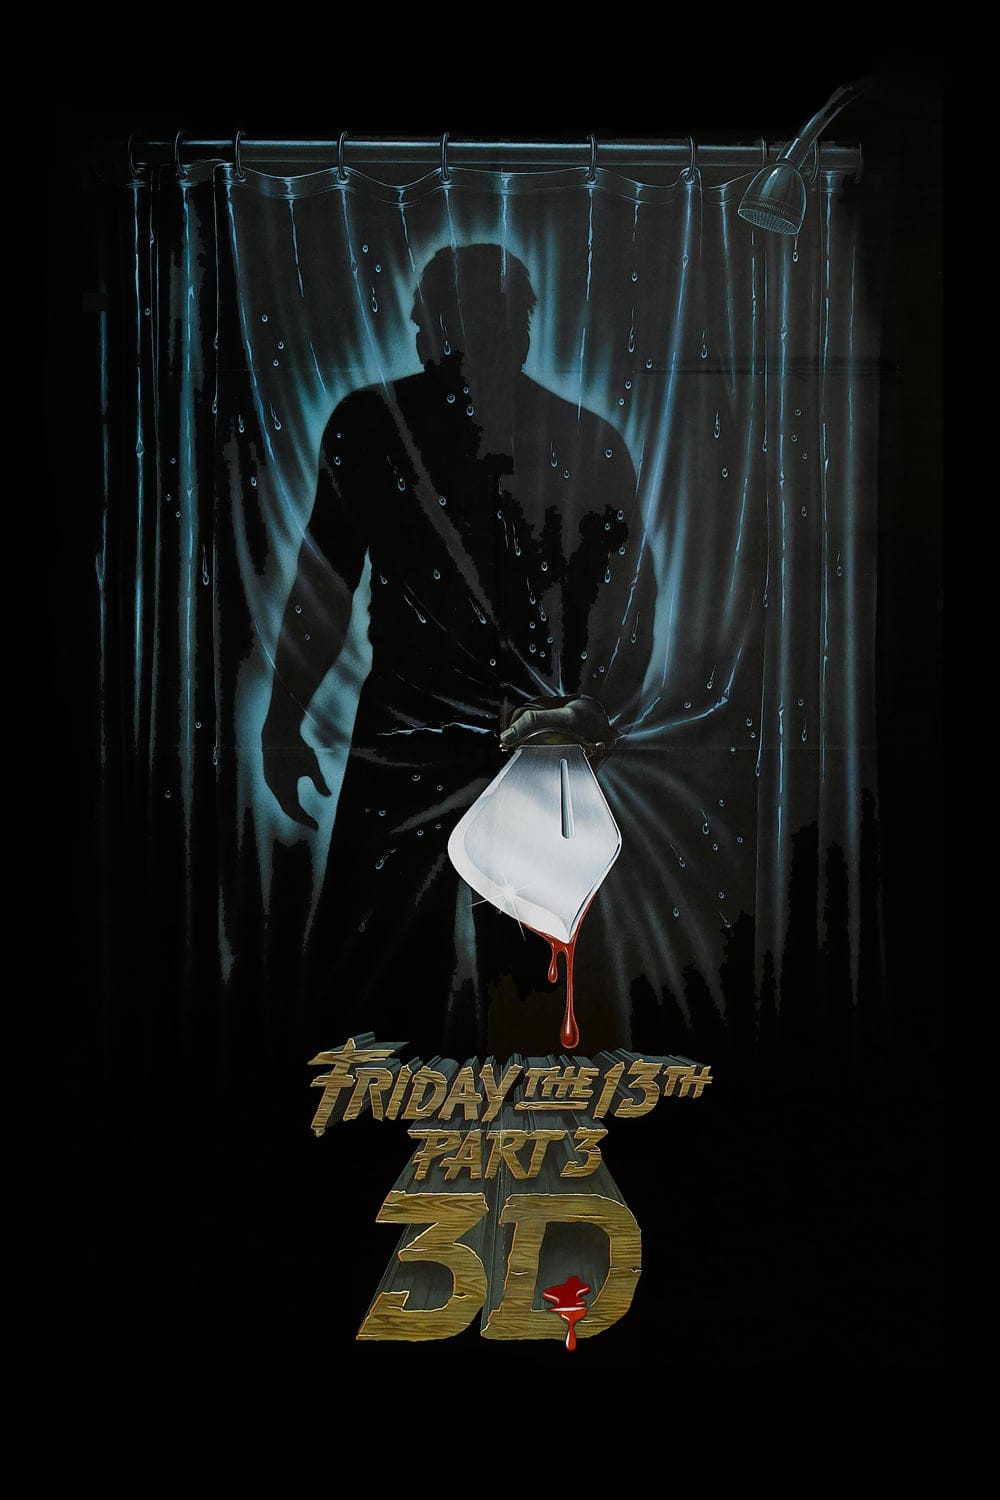 """Poster for the movie """"Friday the 13th Part III"""""""